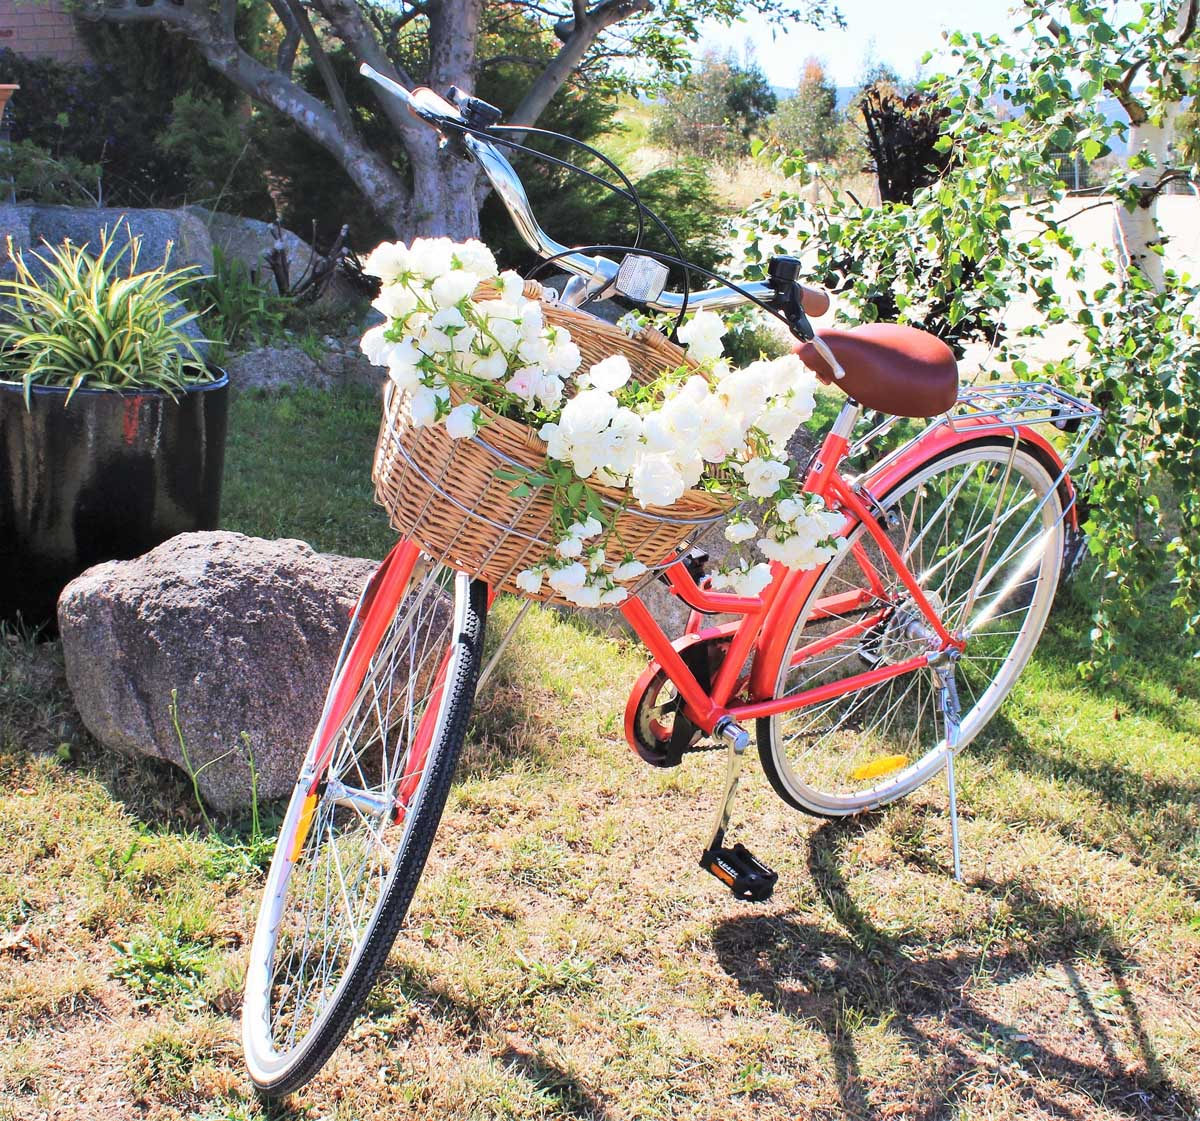 Ski-Inn-Jindabyne-Accommdation-Cafe-restaurant-bar- Free Bike Hire 03